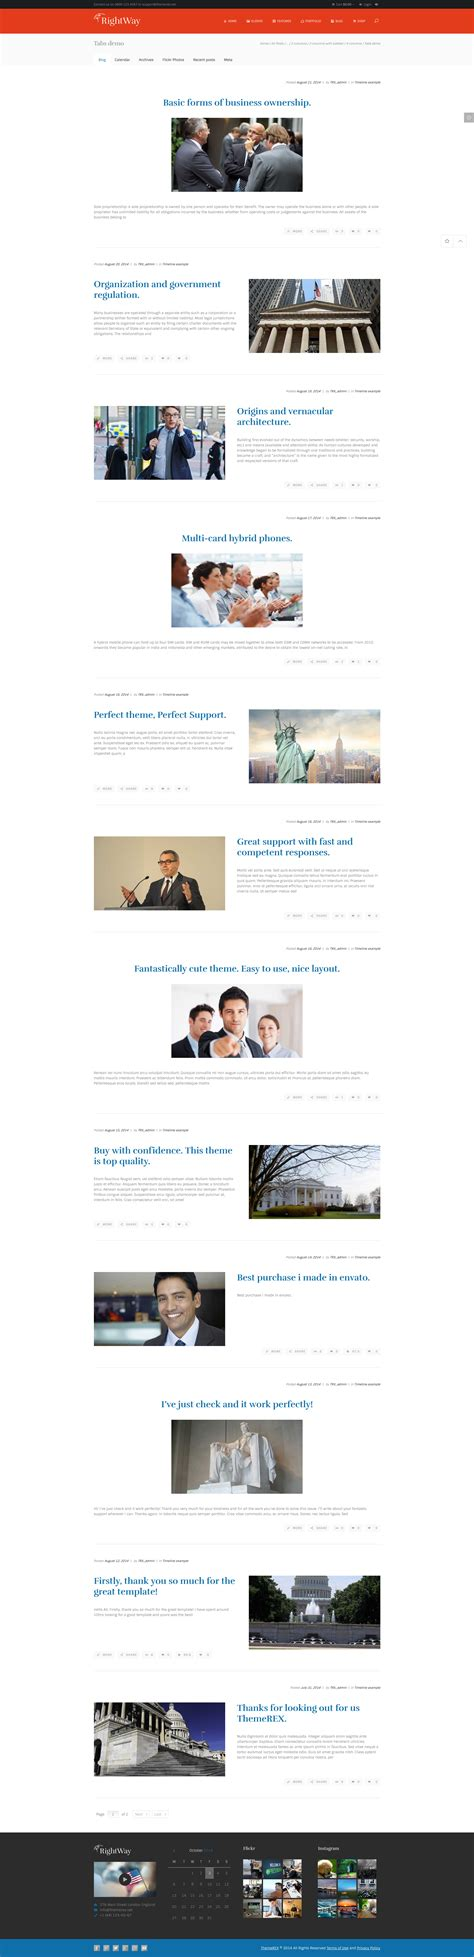 blogger themes with tabs right way political wordpress theme by themerex